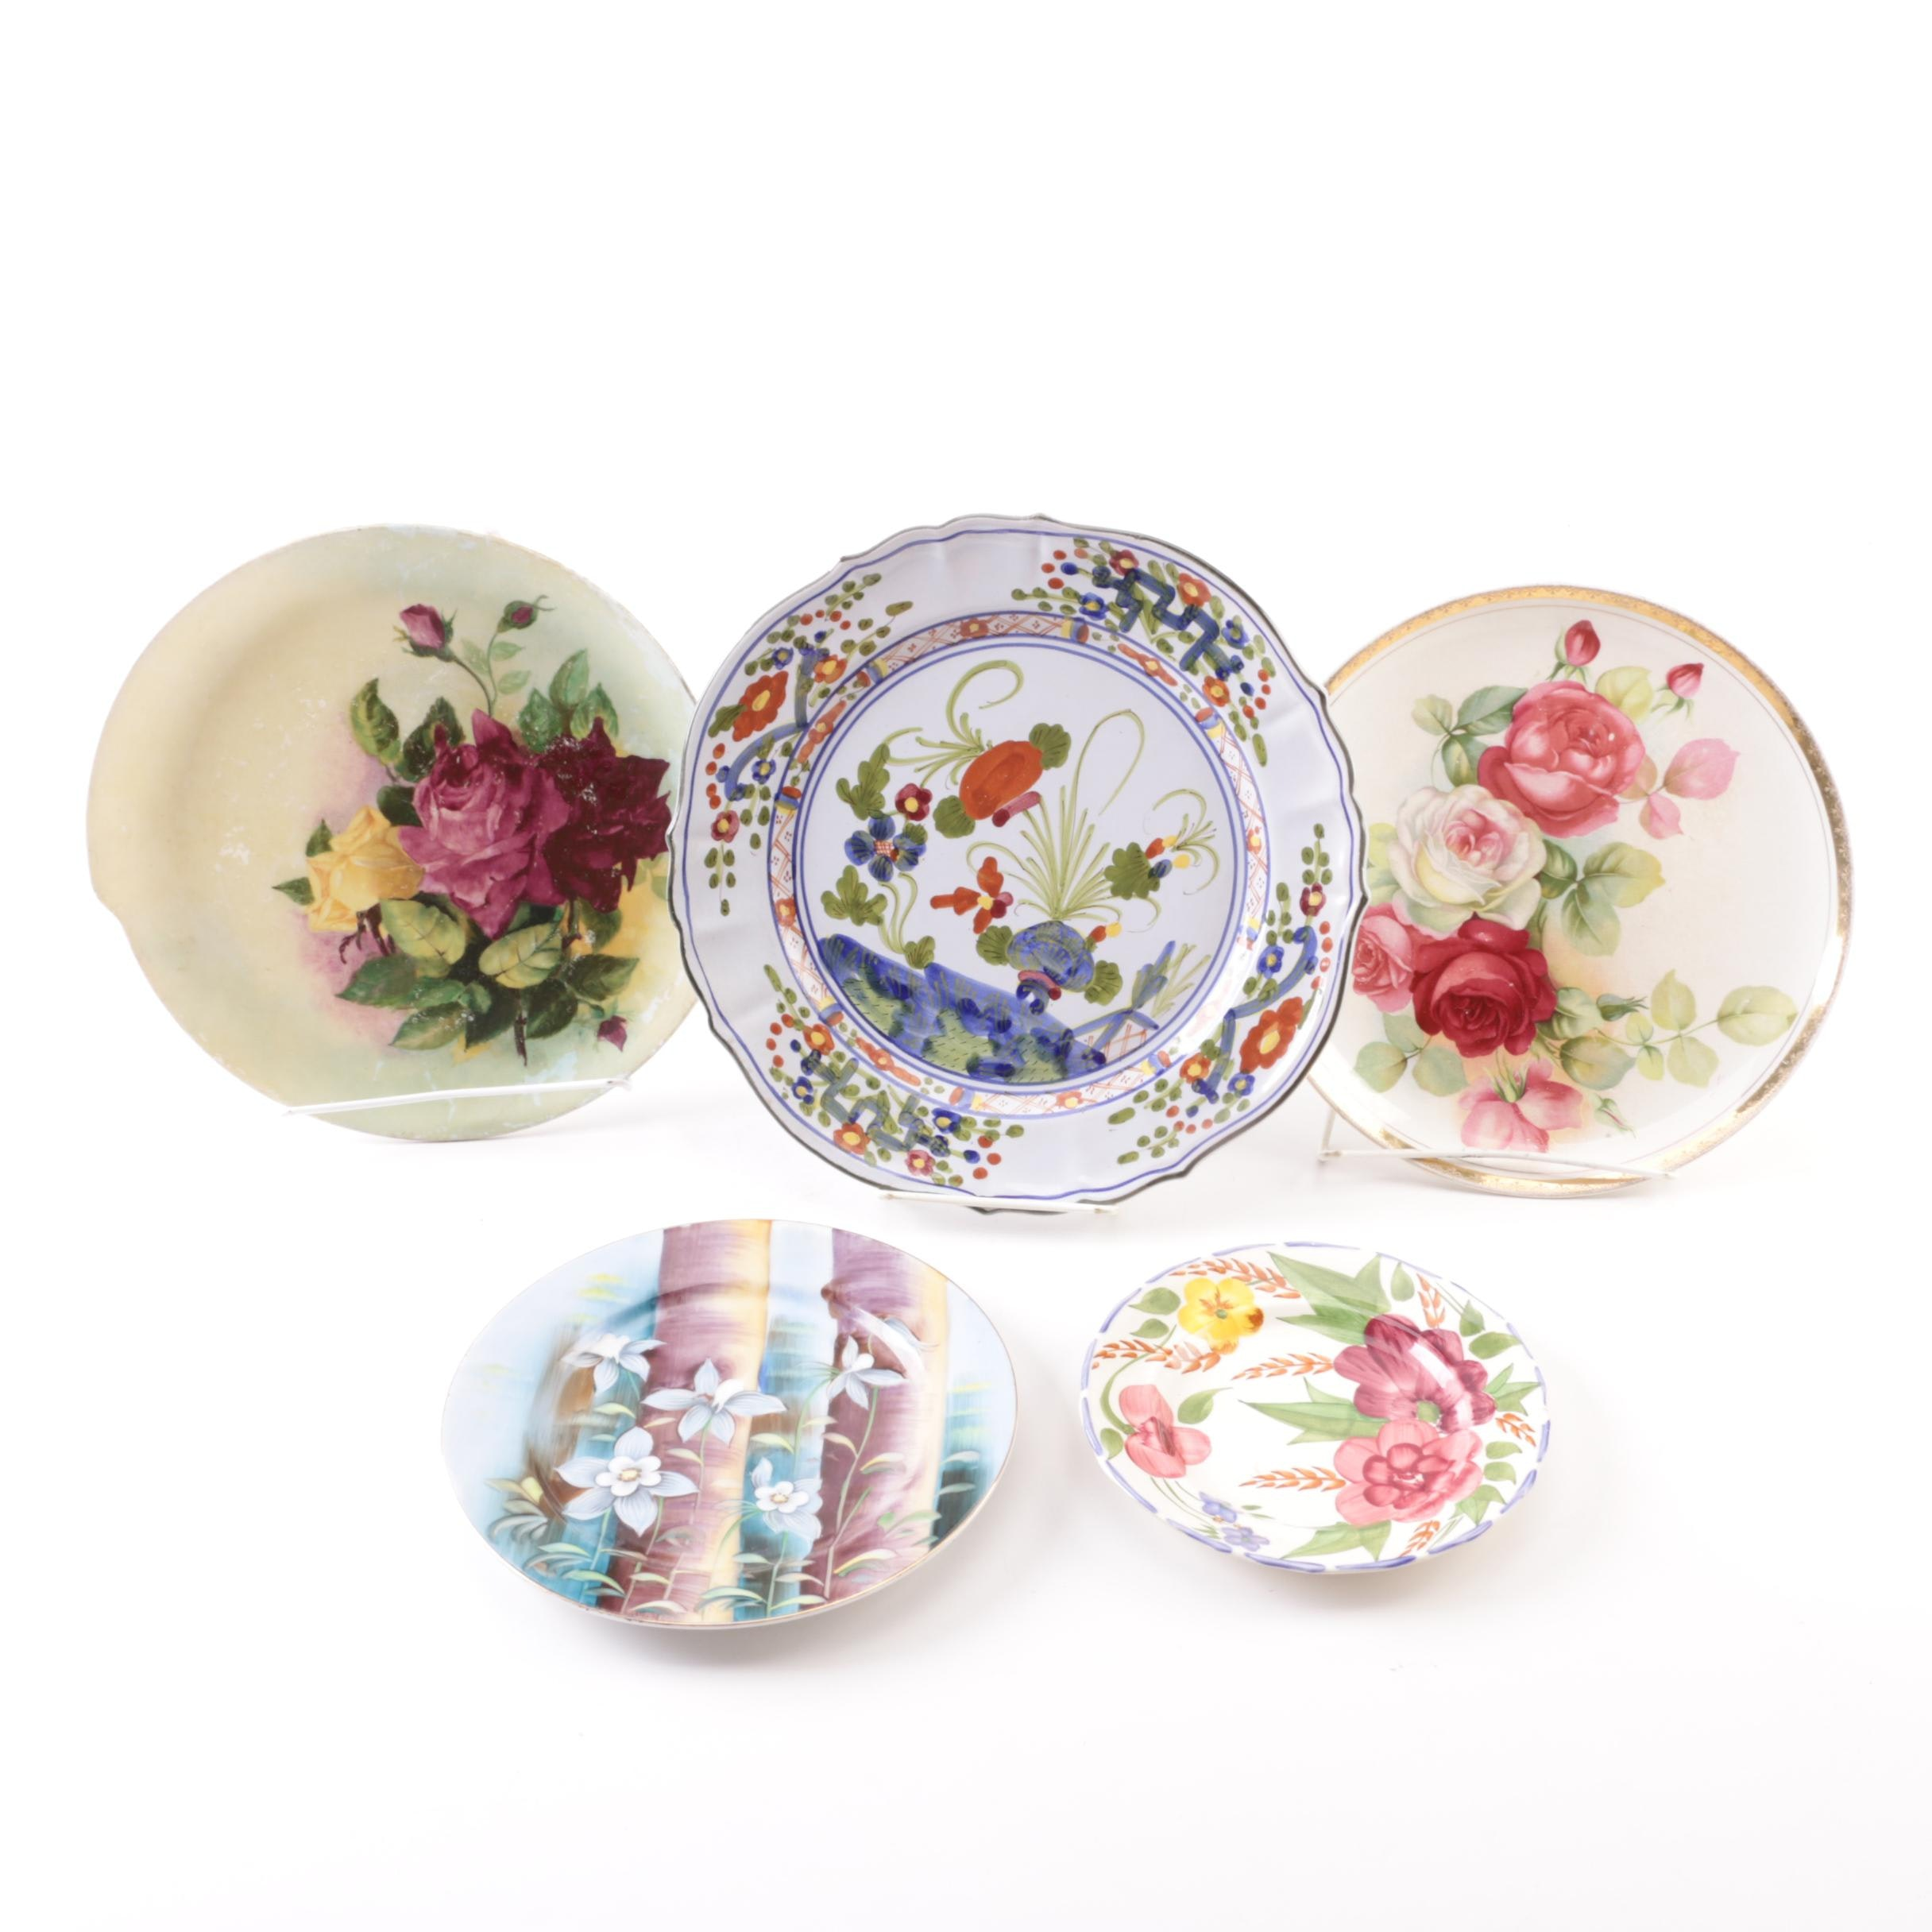 Decorative Plates Including Italian Faience in the Style of Doccia